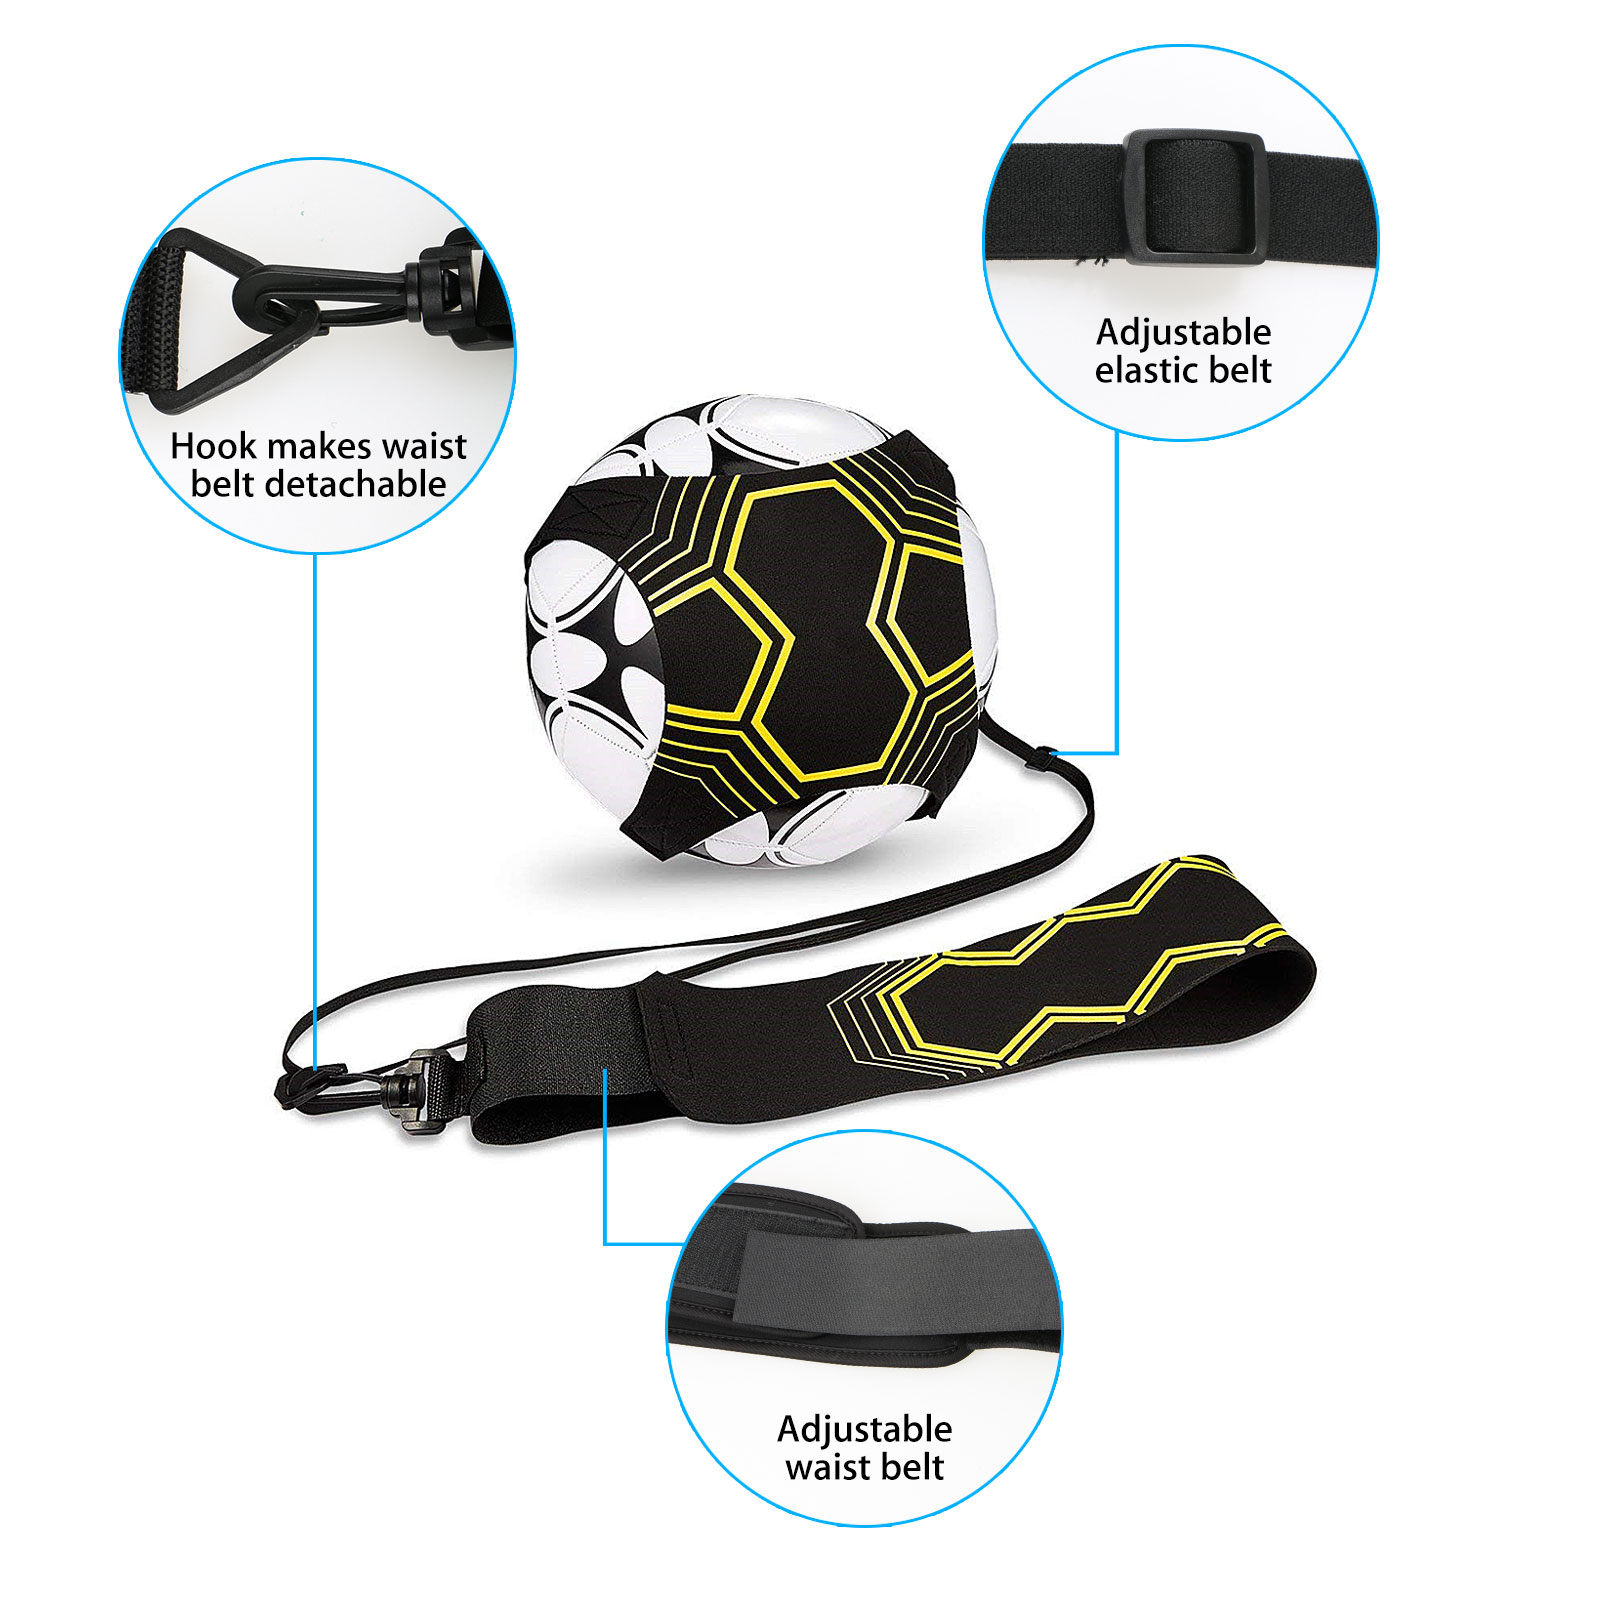 Soccer Trainer Soccer Football Kick Throw Trainer Solo Practice Training Aid Control Skills Adjustable Waist Belt For Kids Adults Fits Ball Size 3 4 And 5 Walmart Com Walmart Com